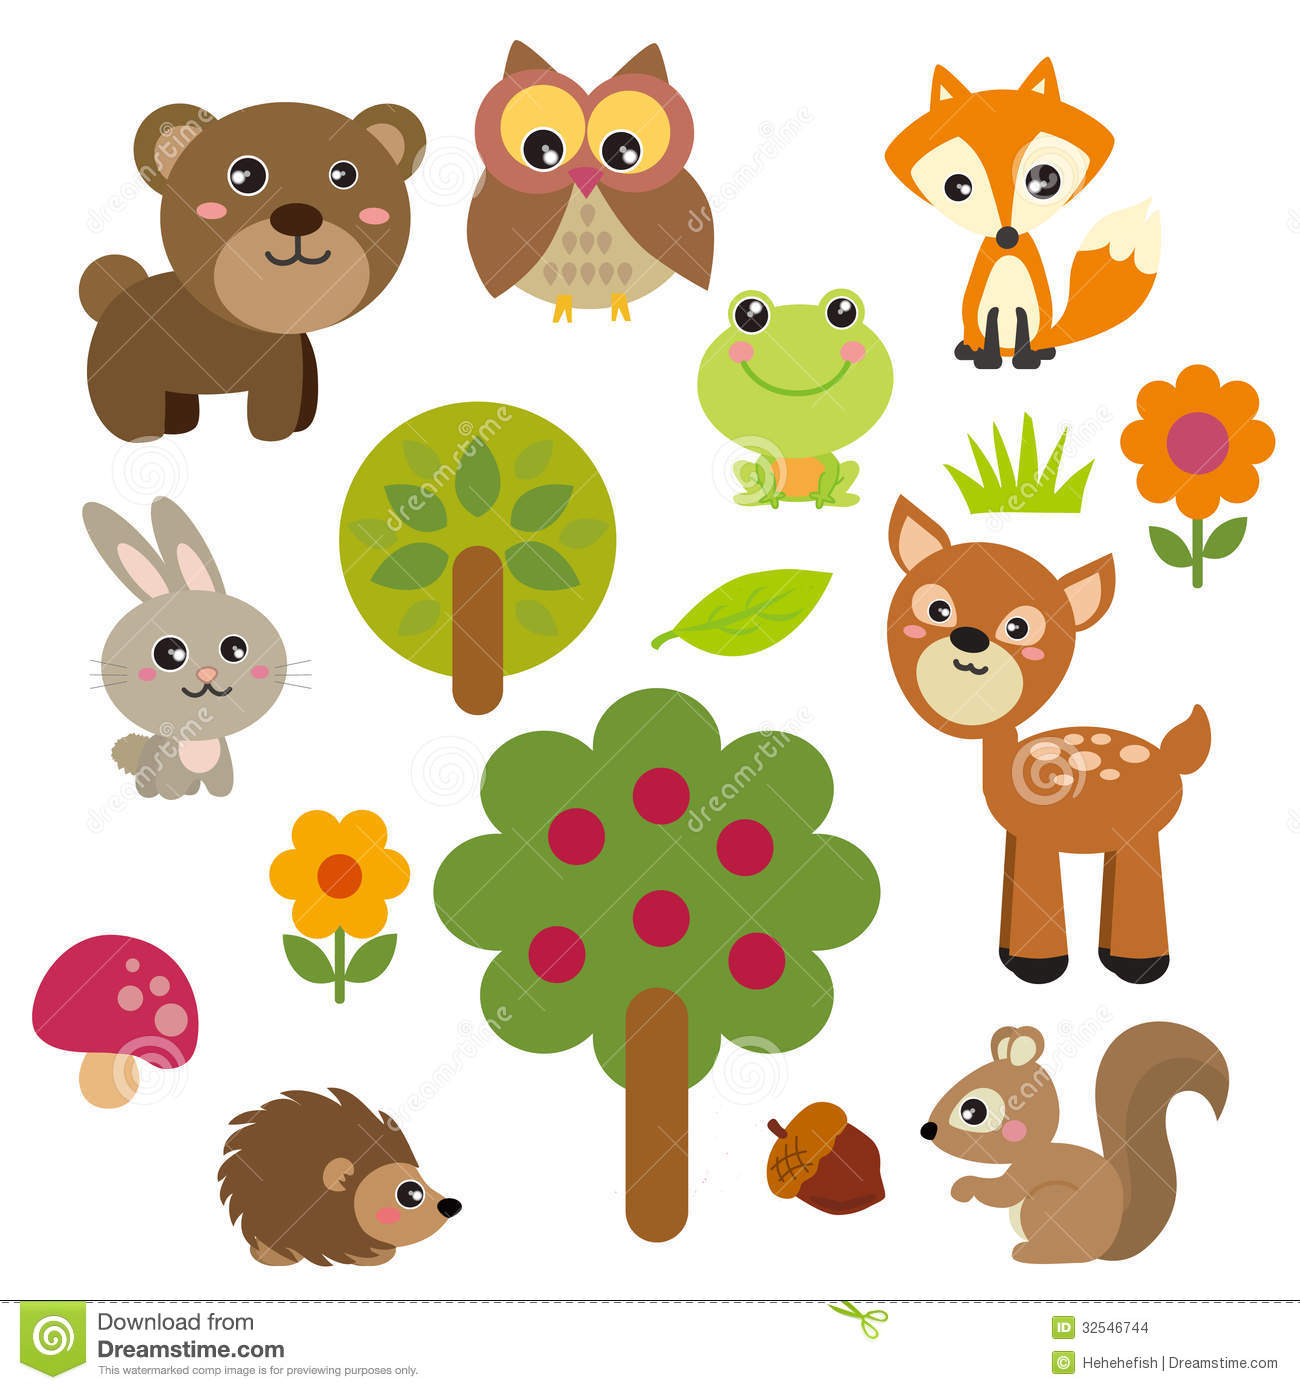 Baby forest animals clipart - photo#4